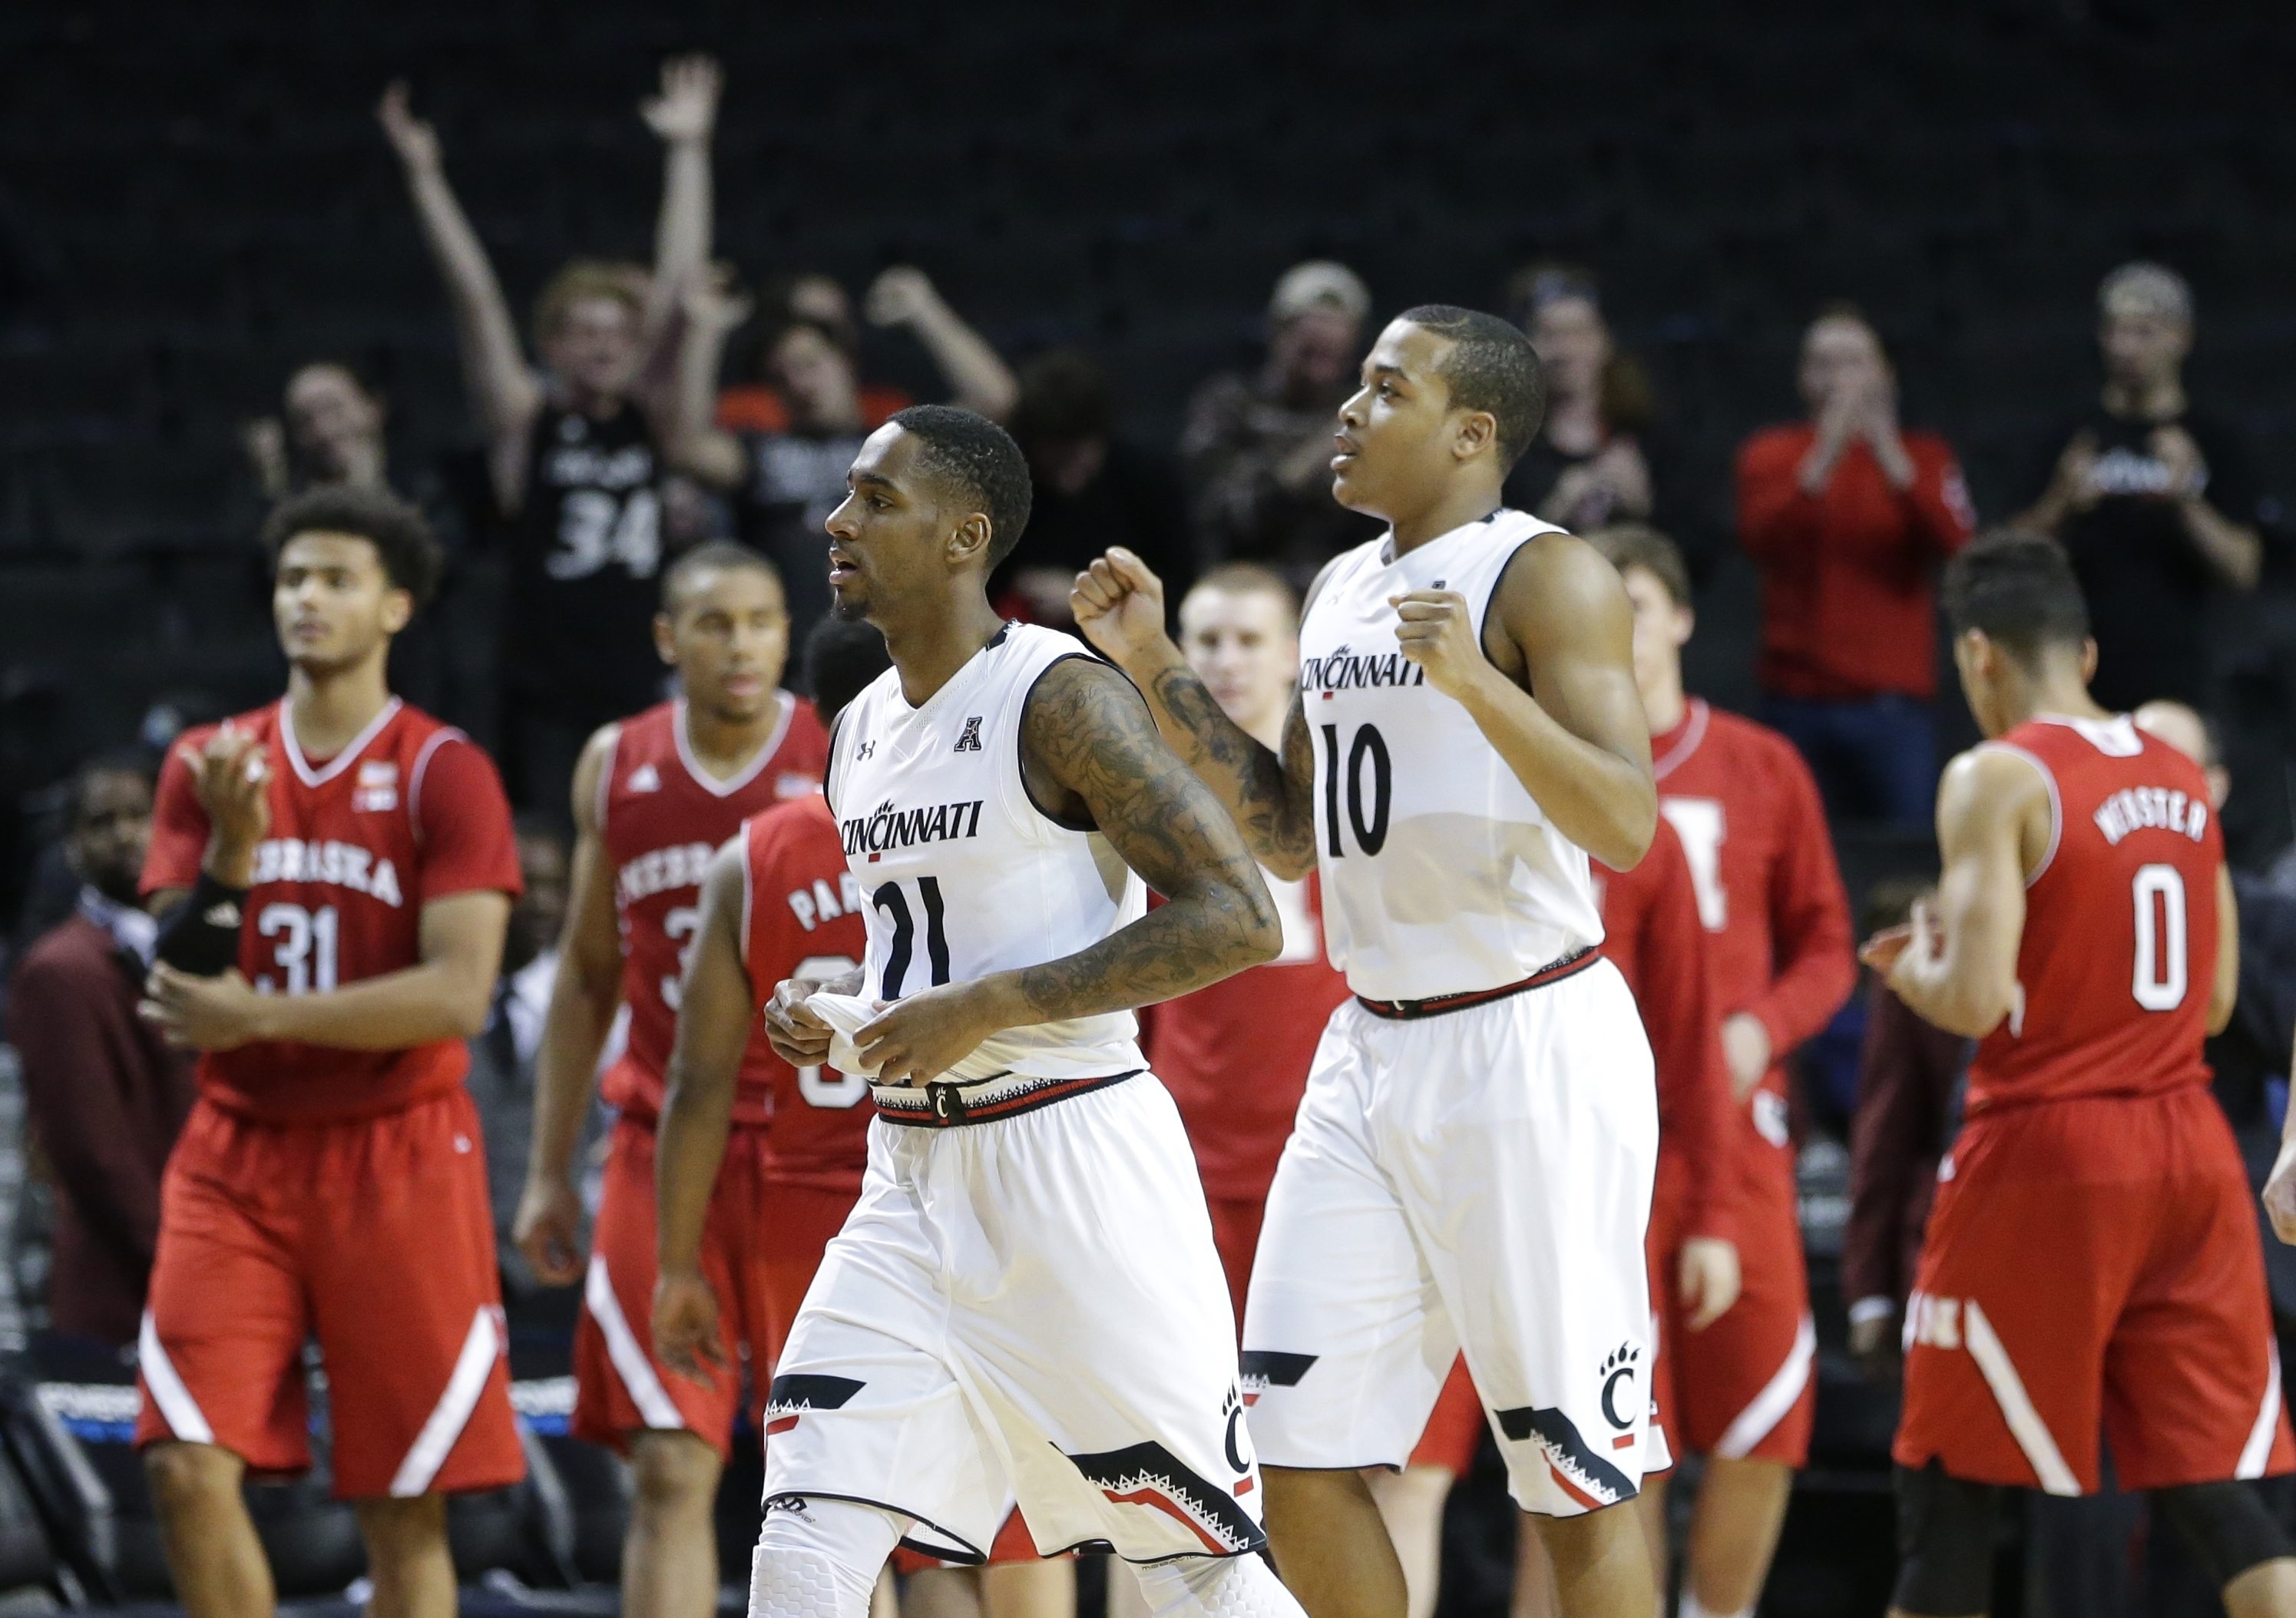 Cincinnati's Farad Cobb (21) and Troy Caupain (10) celebrate after an NCAA college basketball game against Nebraska Friday, Nov. 27, 2015, in New York. Cincinnati won 65-61.(AP Photo/Frank Franklin II)